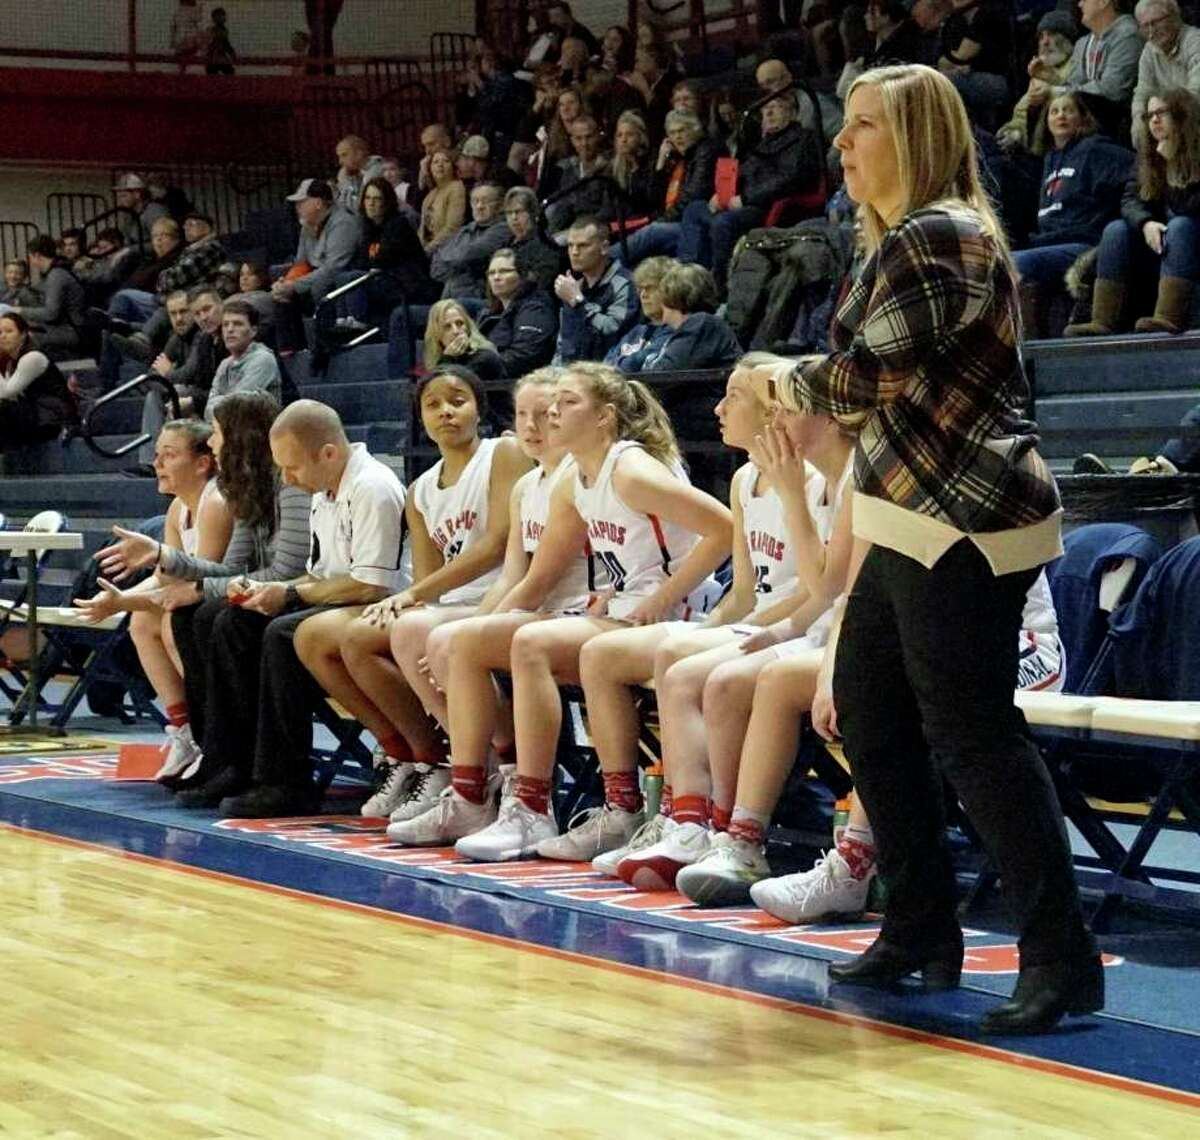 Jessica Haist said the 2017-18 edition of her team was one of the most talented she's ever coached. (Pioneer photo/Joe Judd)